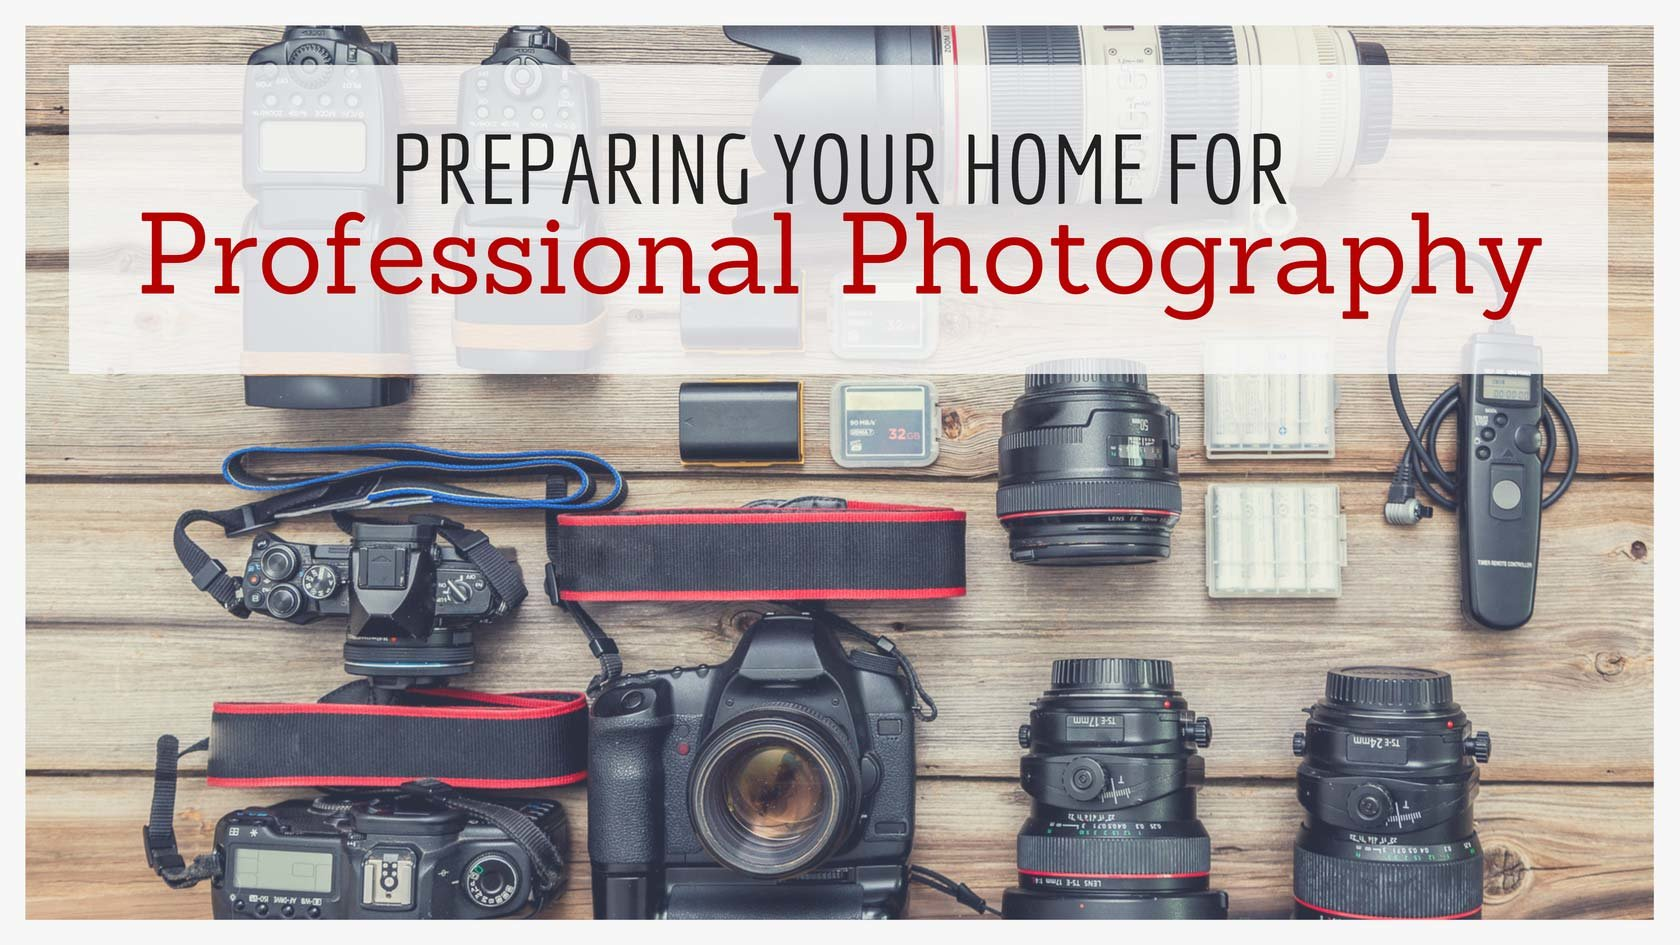 Preparing Your Home for Professional Photography